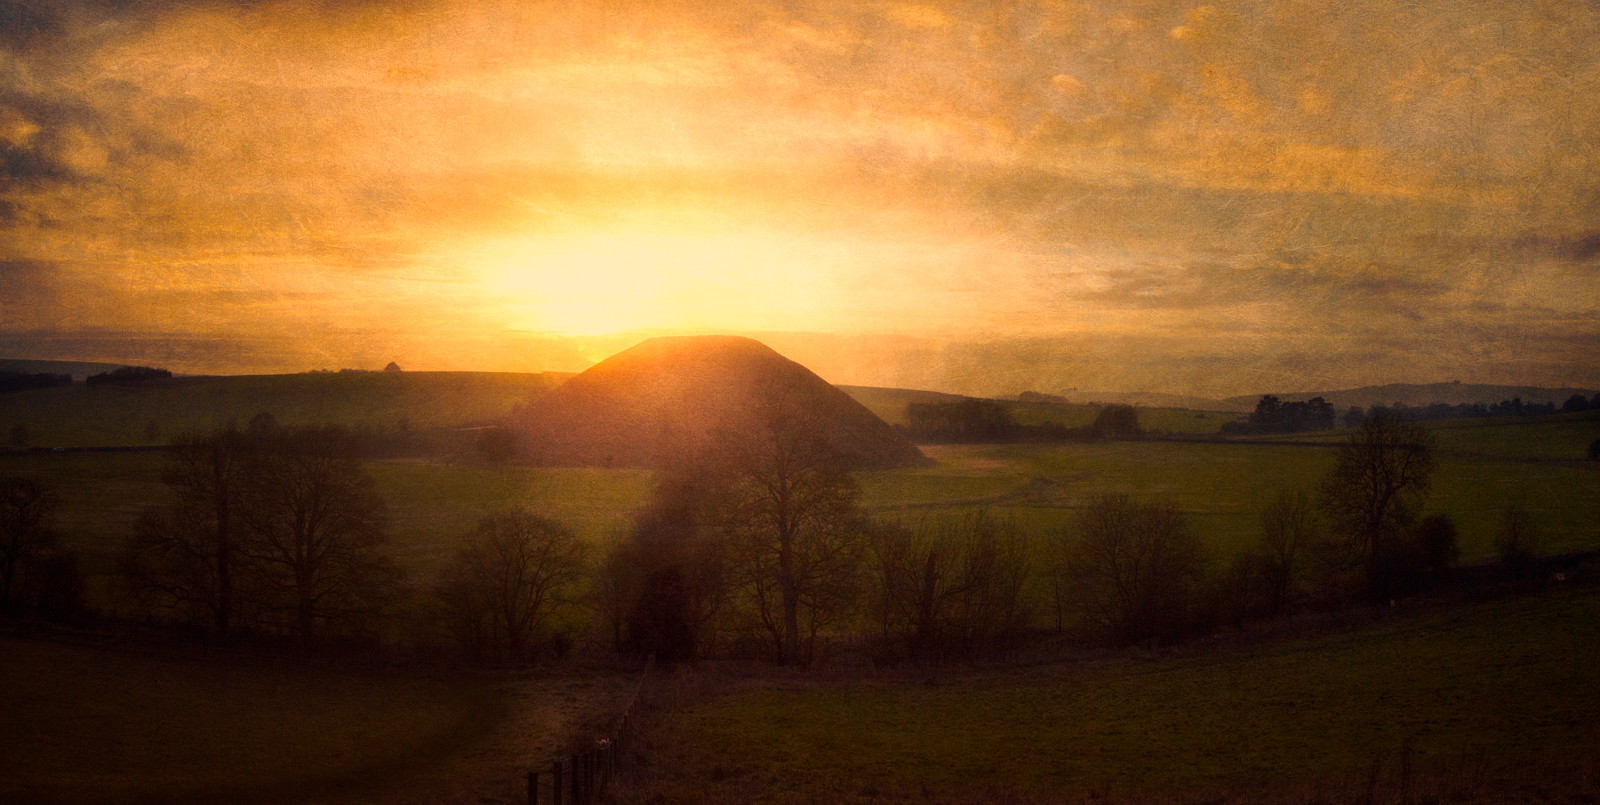 View from Waden Hill of Silbury Hill at sunset